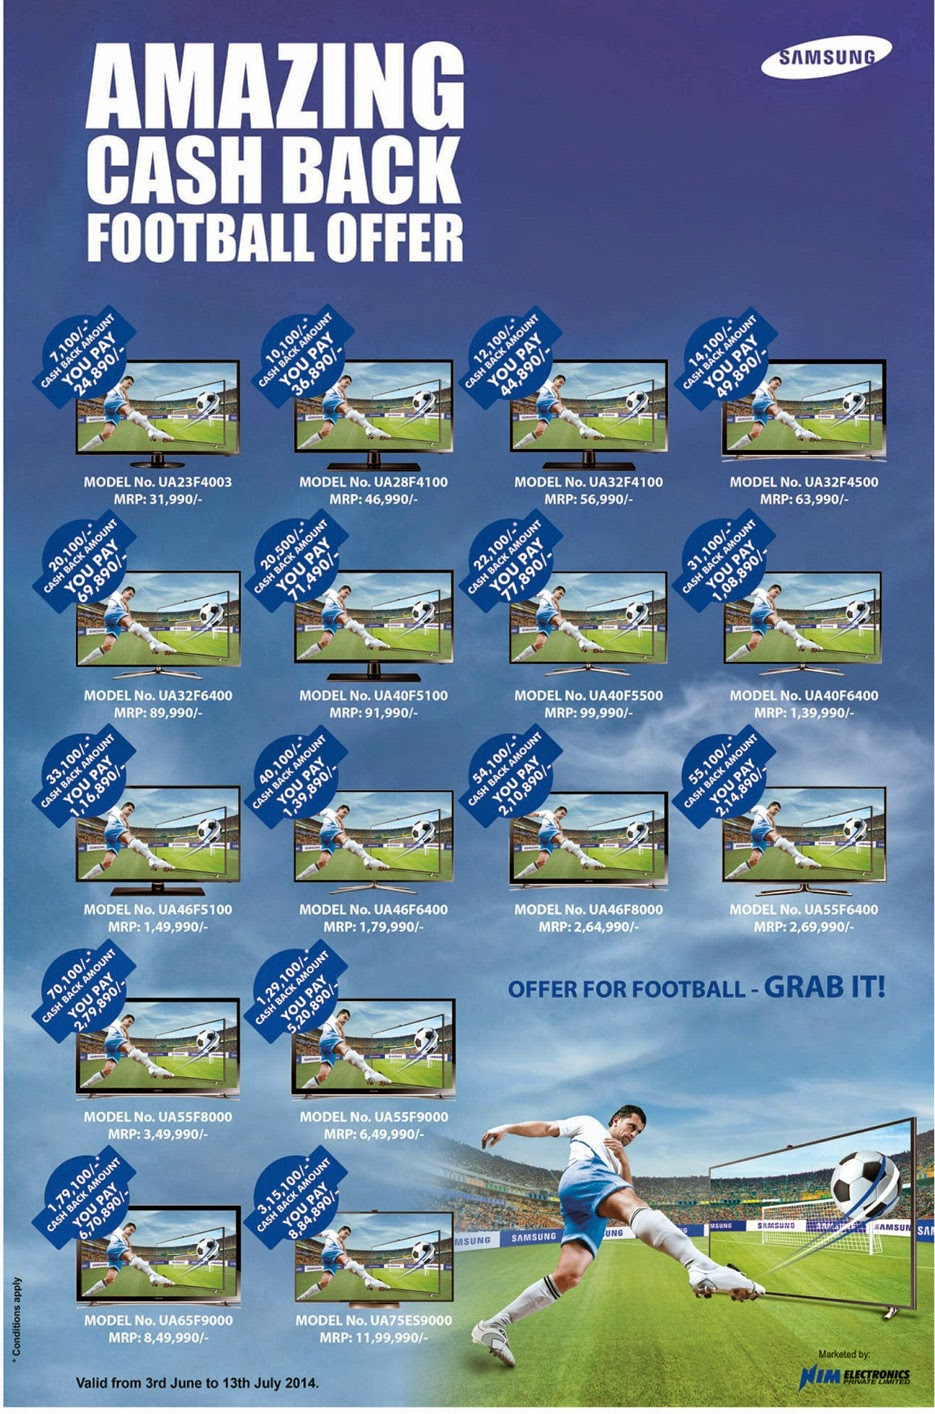 samsung offer for fifa world cup 2014